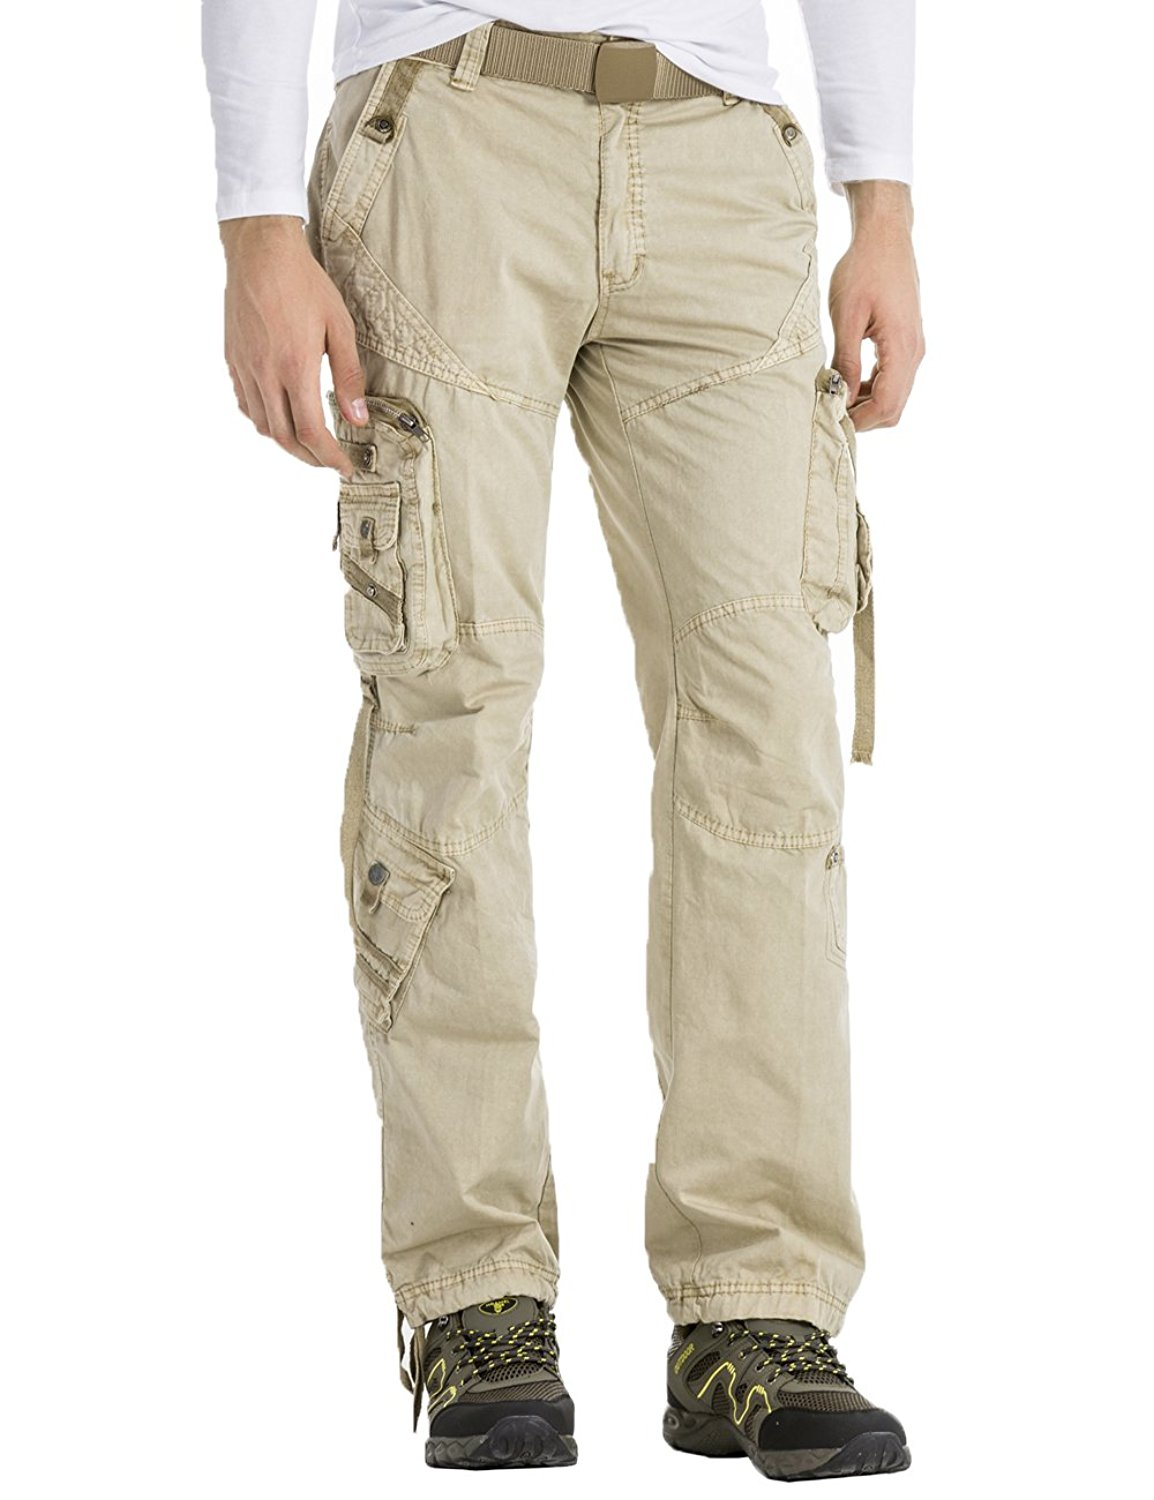 BYWX Men Casual Cotton Military Cargo Multi-Pocket Work Combat Trousers